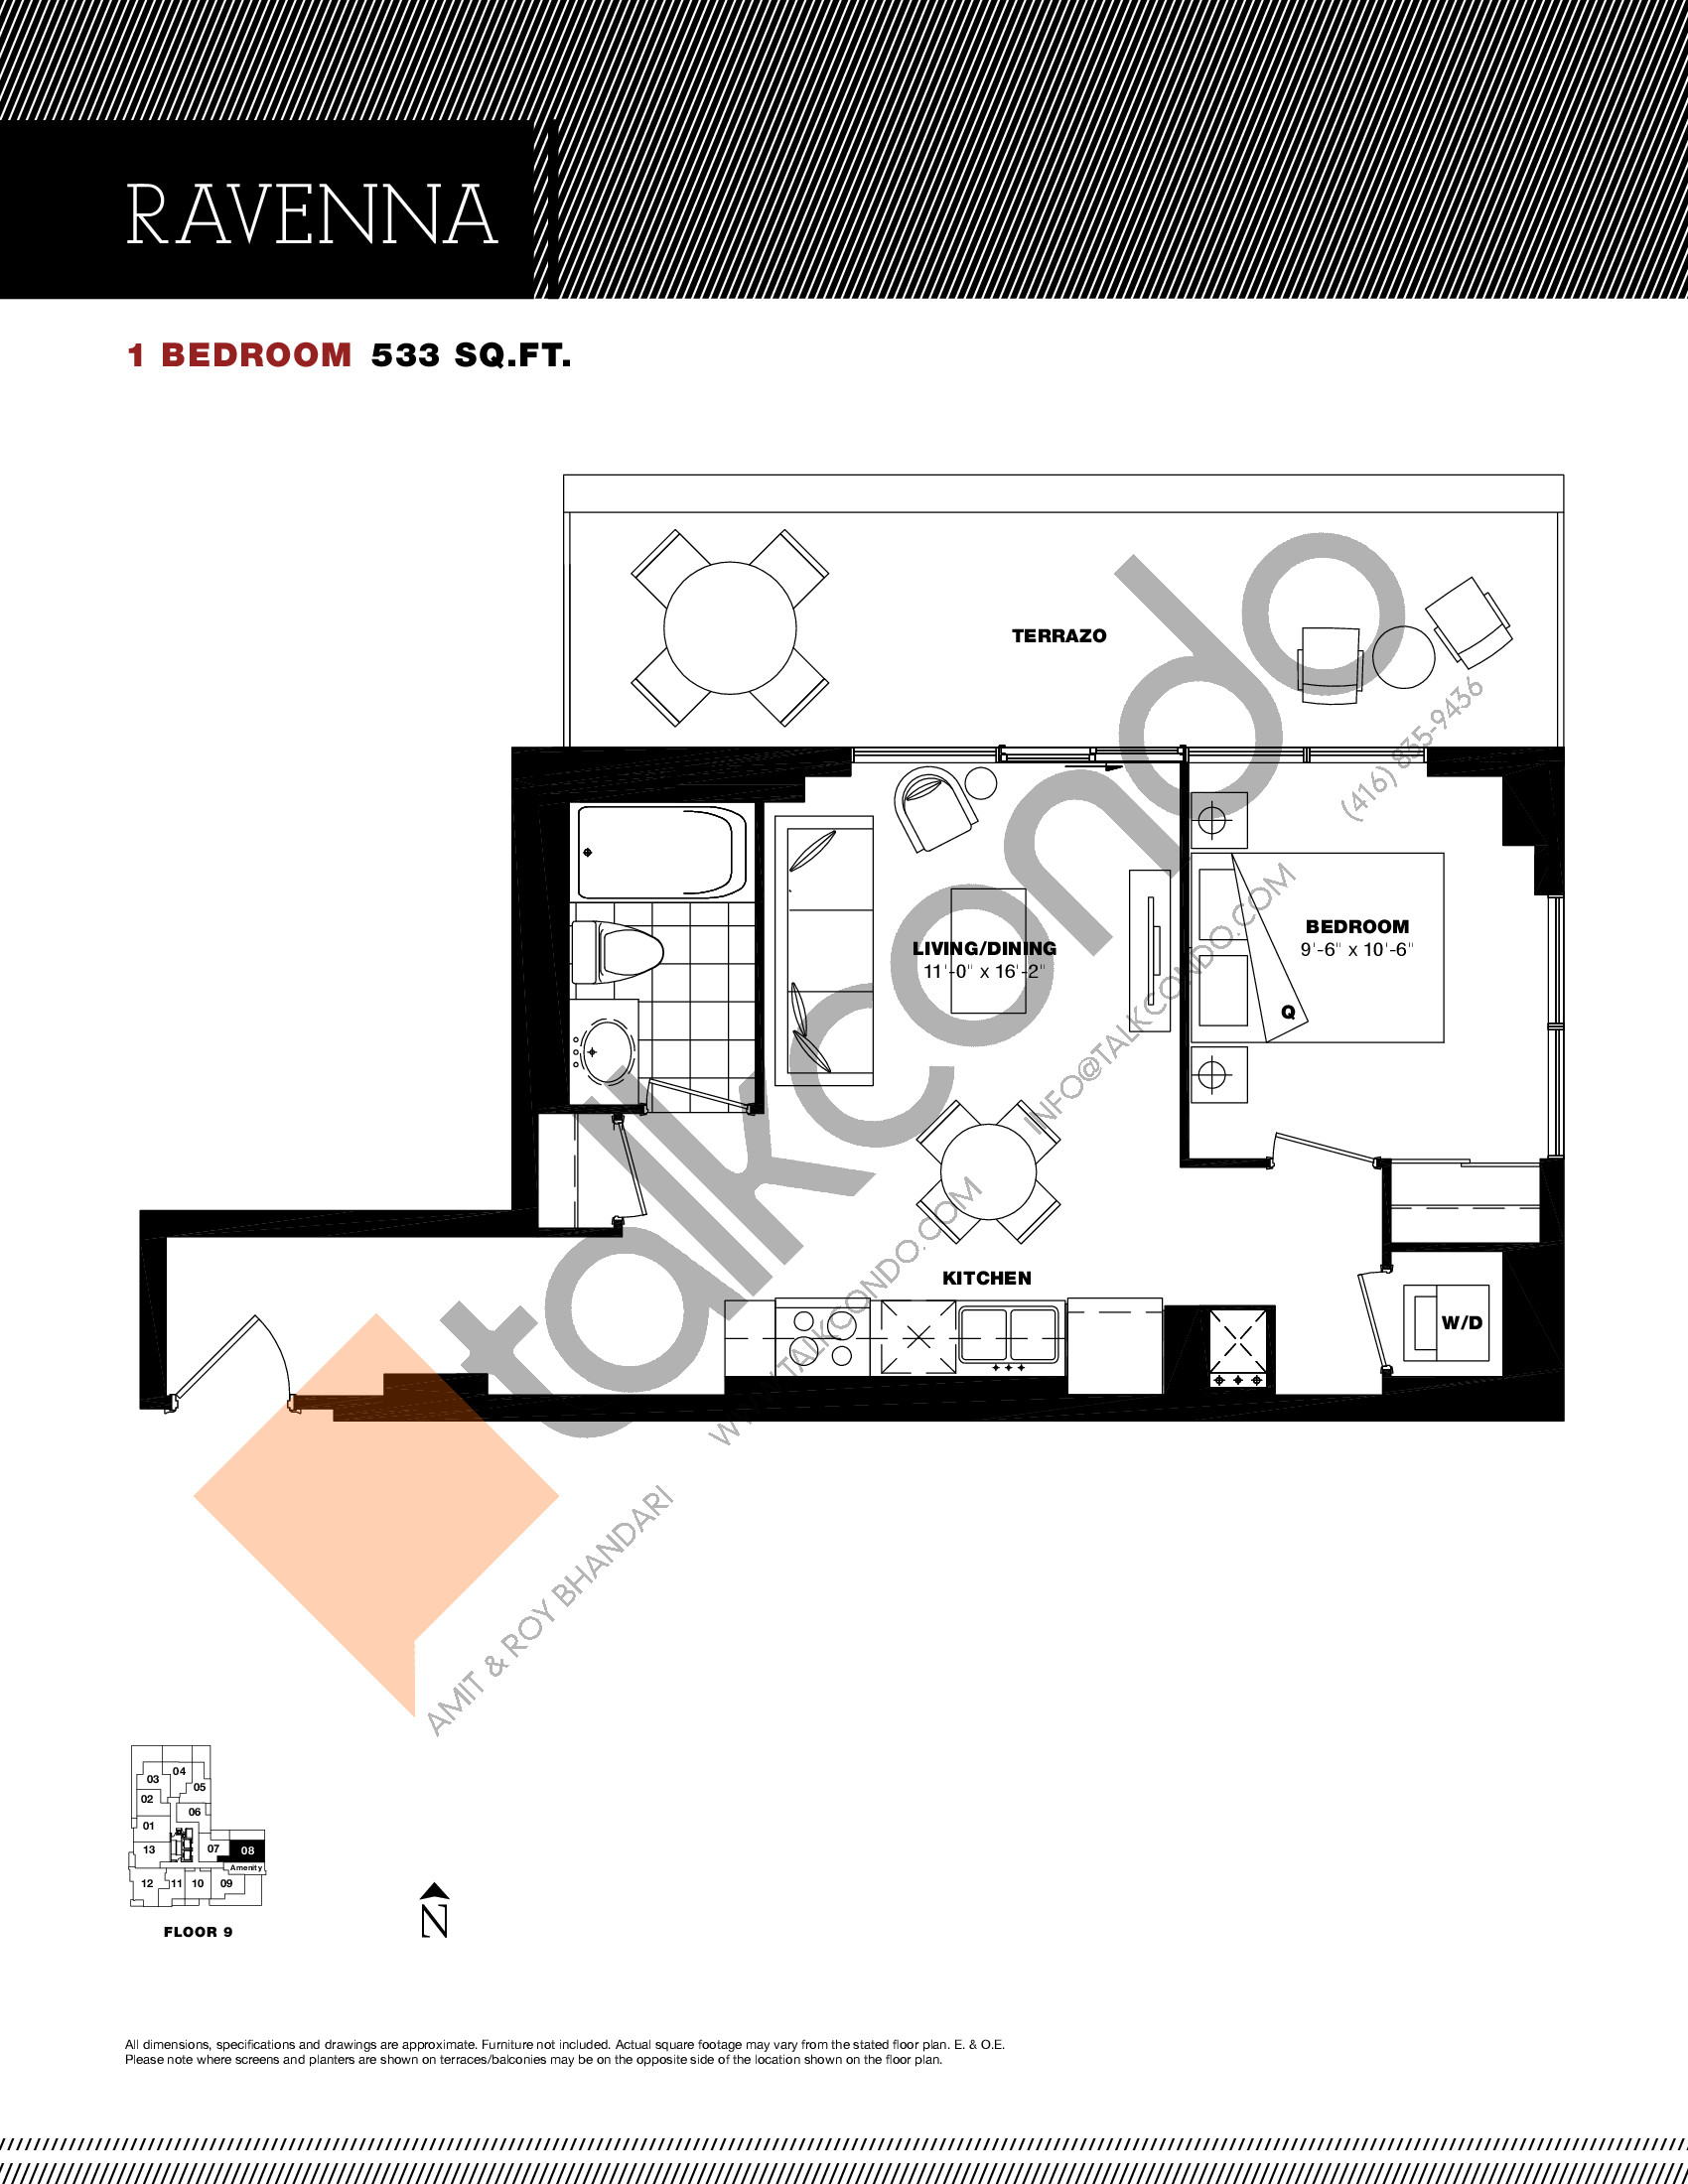 Ravenna Floor Plan at Residenze Palazzo at Treviso 3 Condos - 533 sq.ft